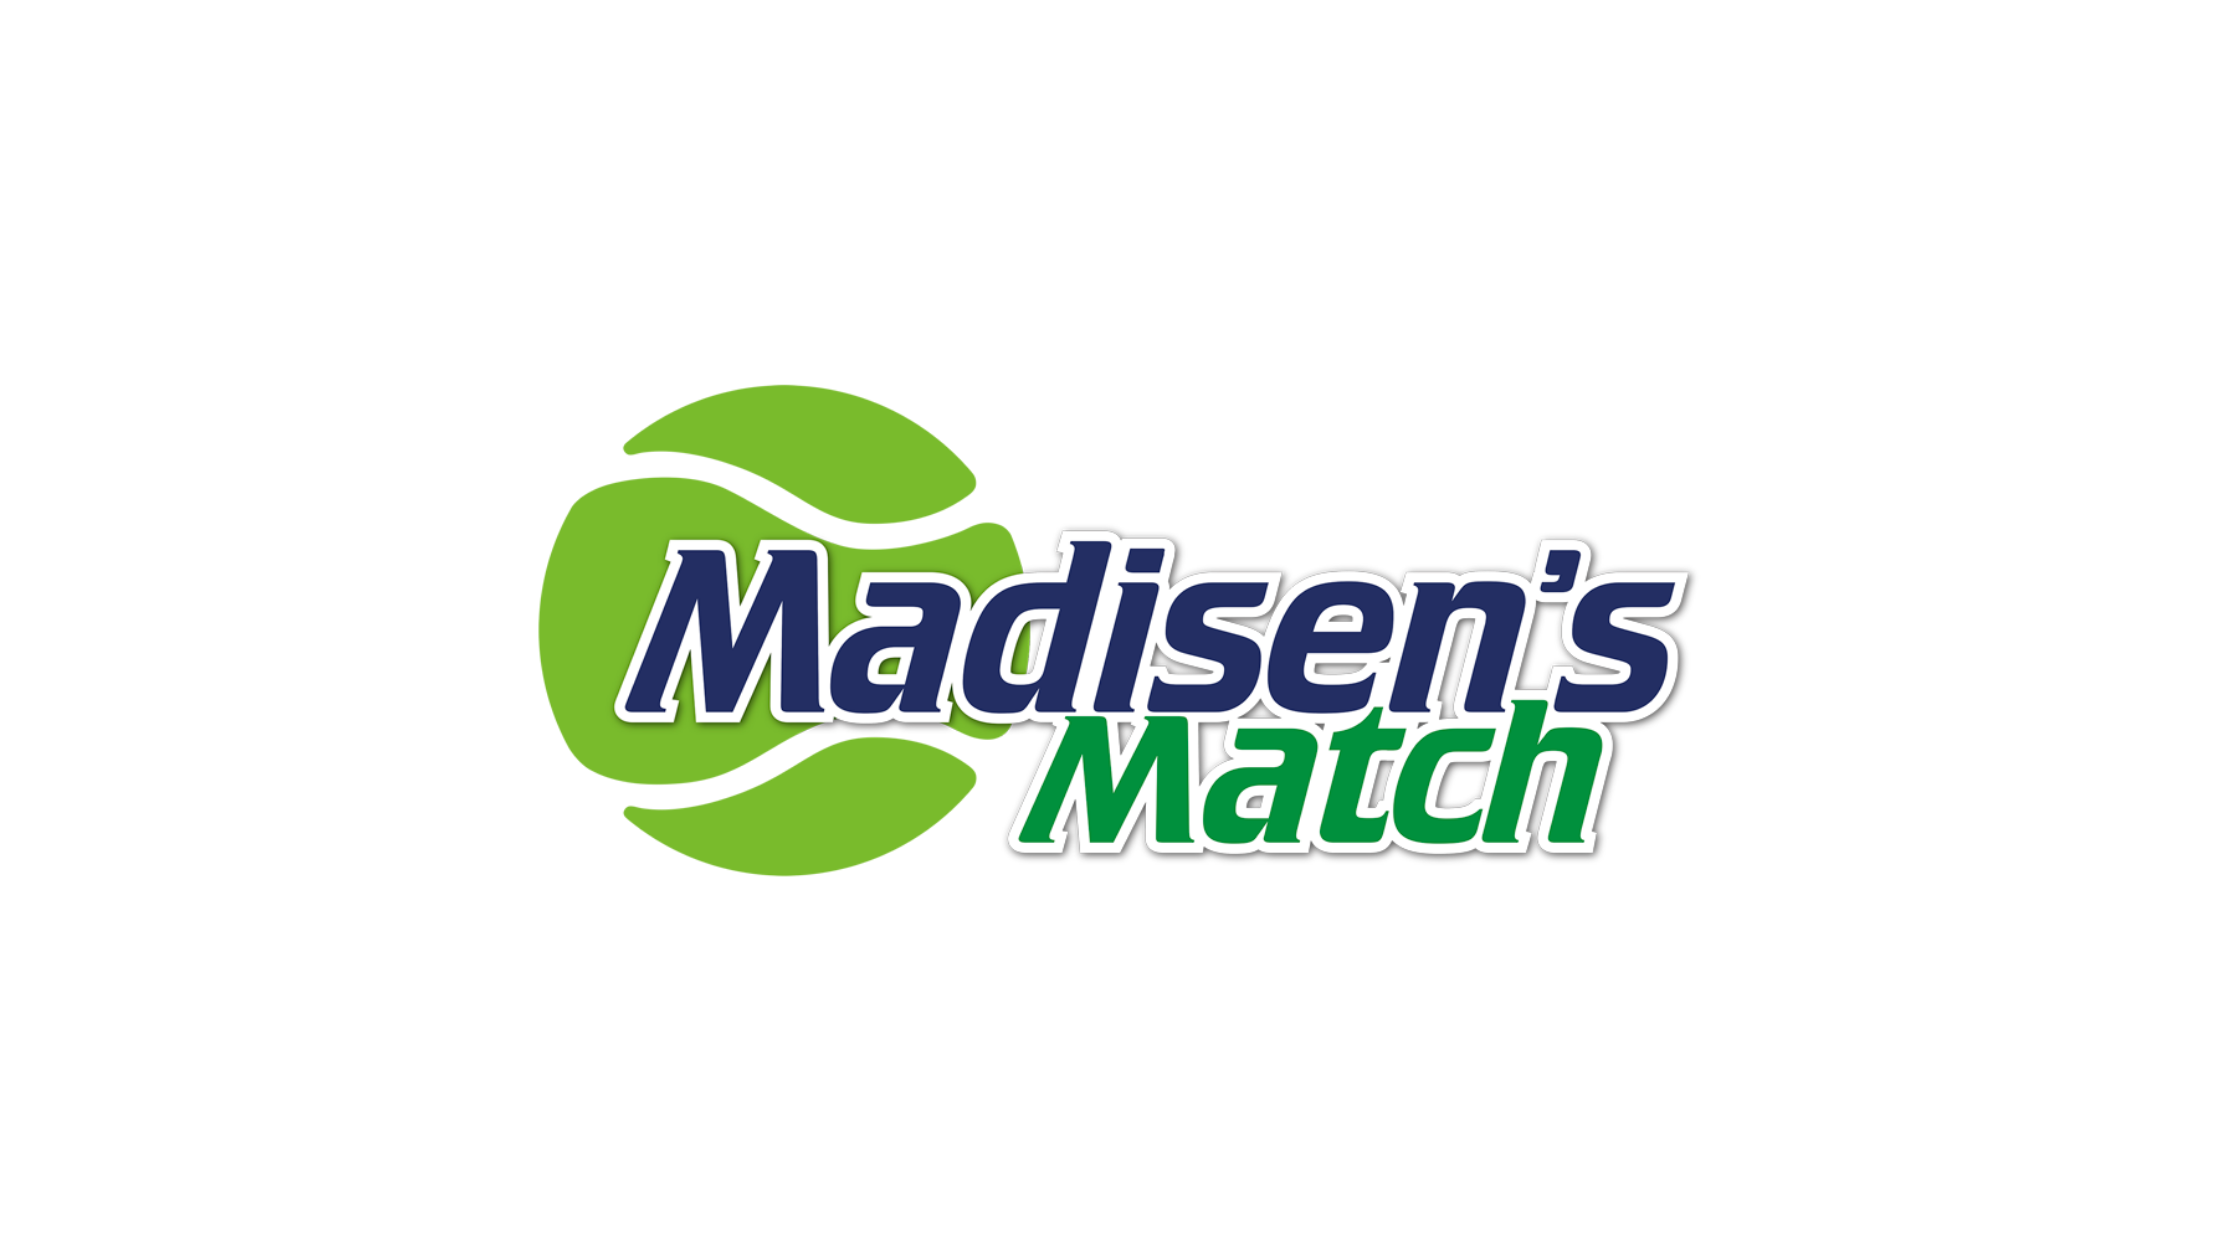 Madisen's Match Week features online auction with international tennis stars